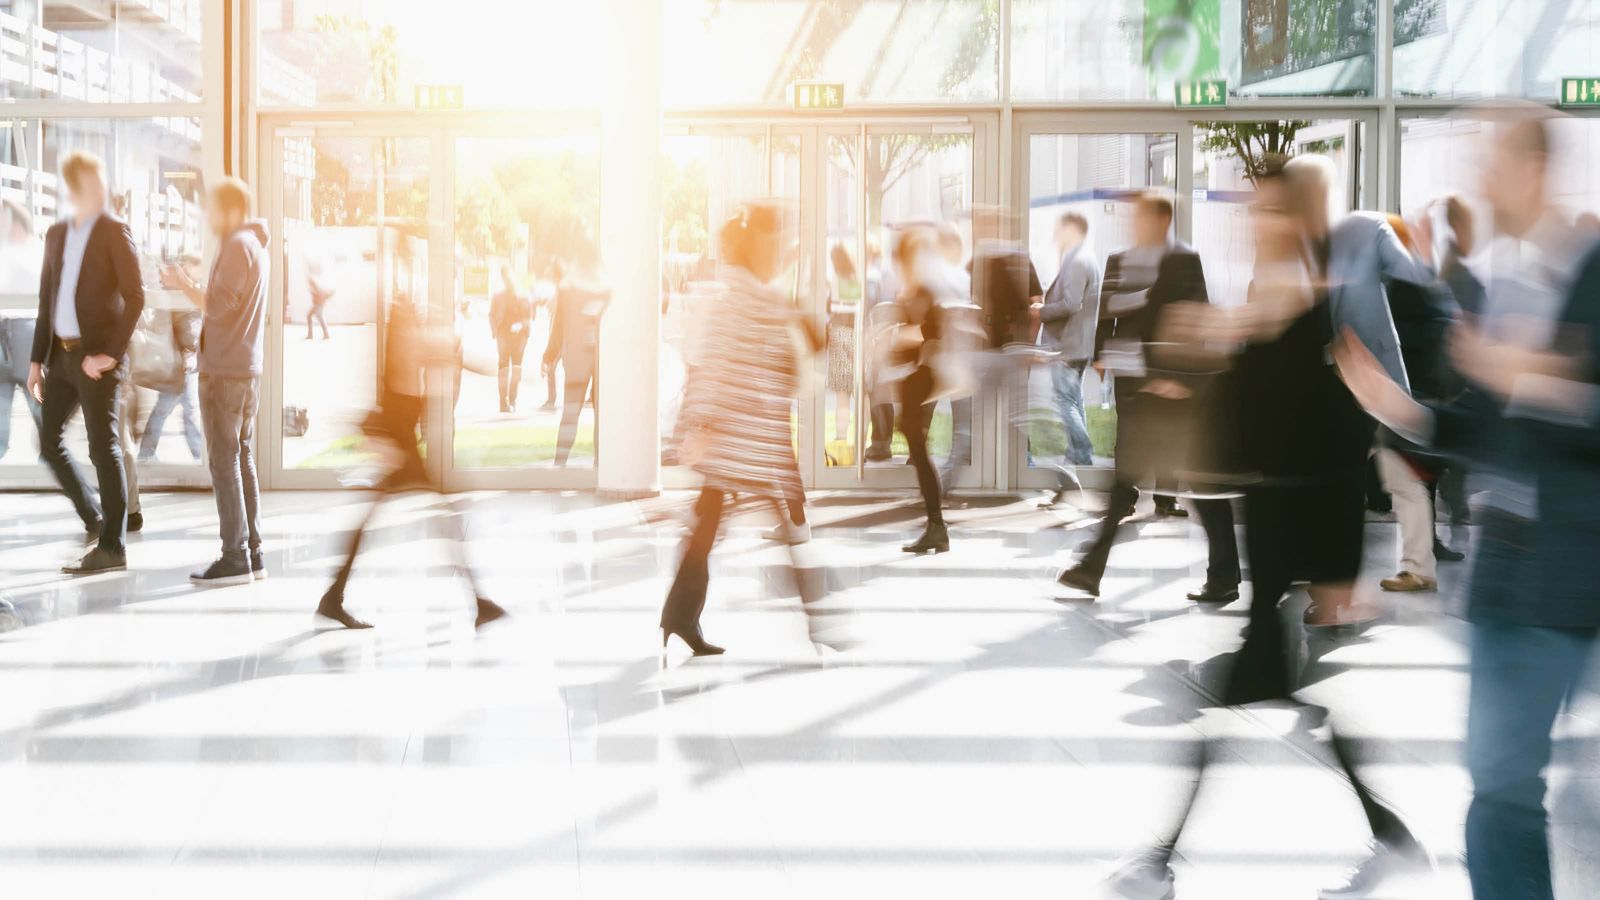 Abstract image of people walking through a busy foyer